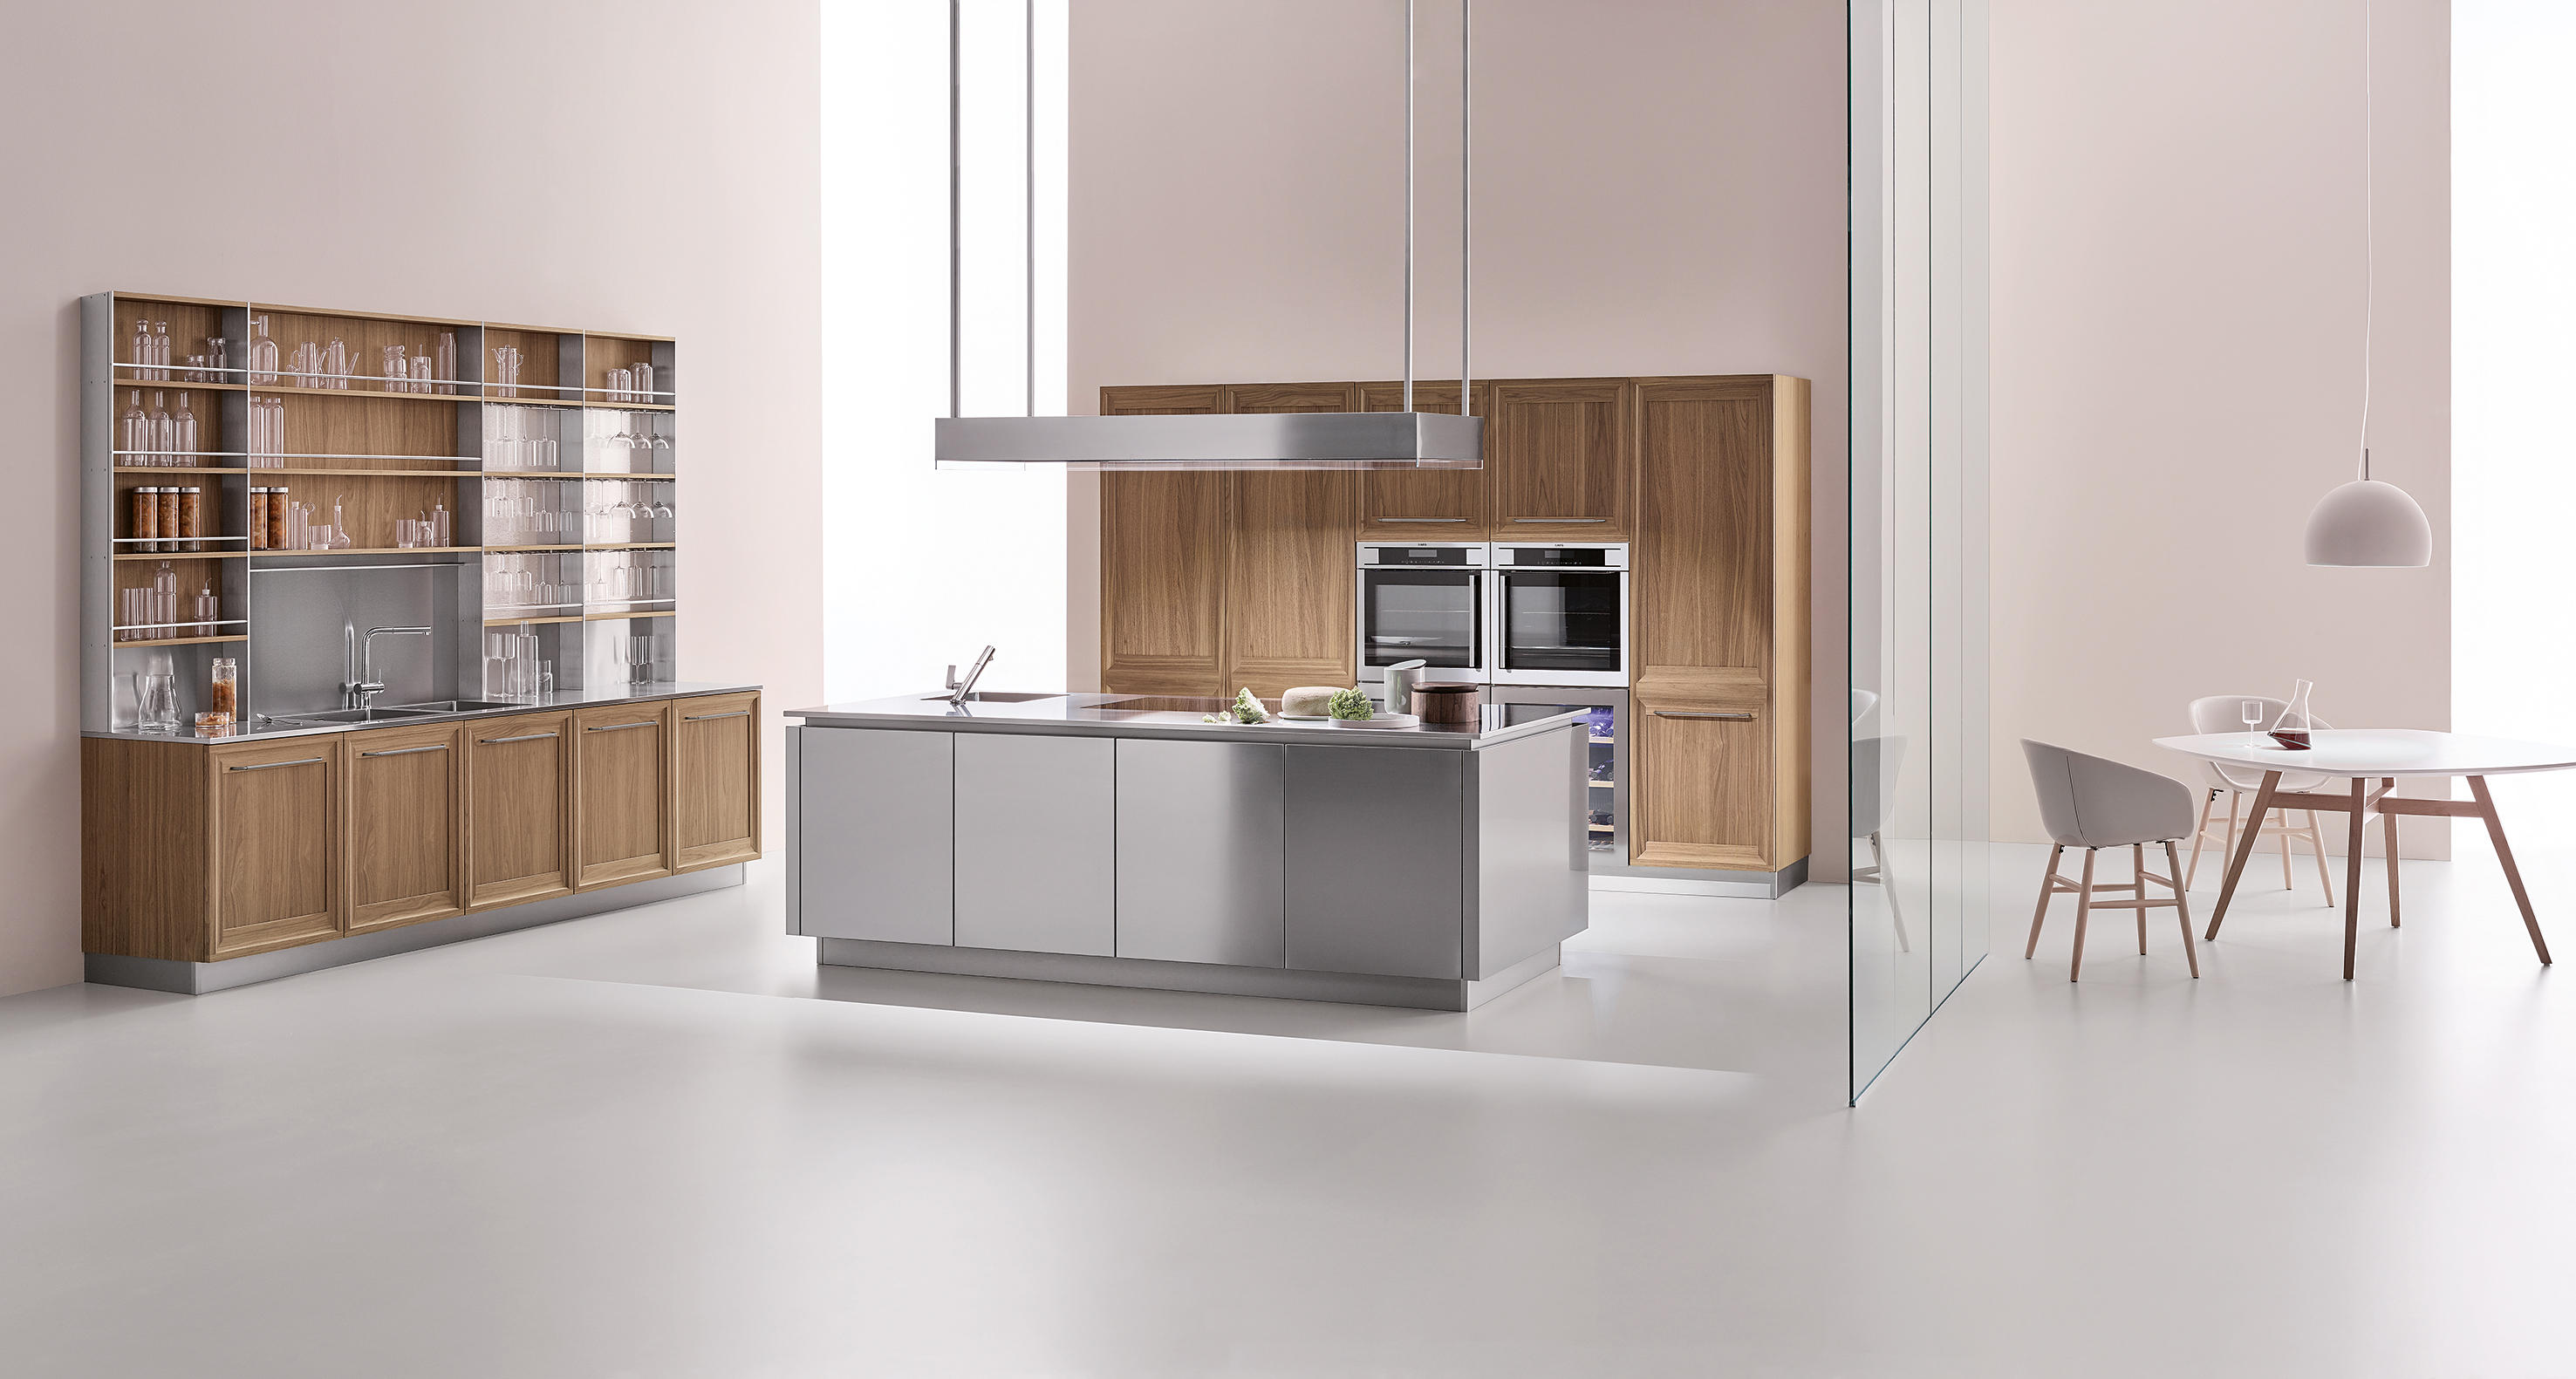 ARTEMISIA - Island kitchens from Veneta Cucine | Architonic